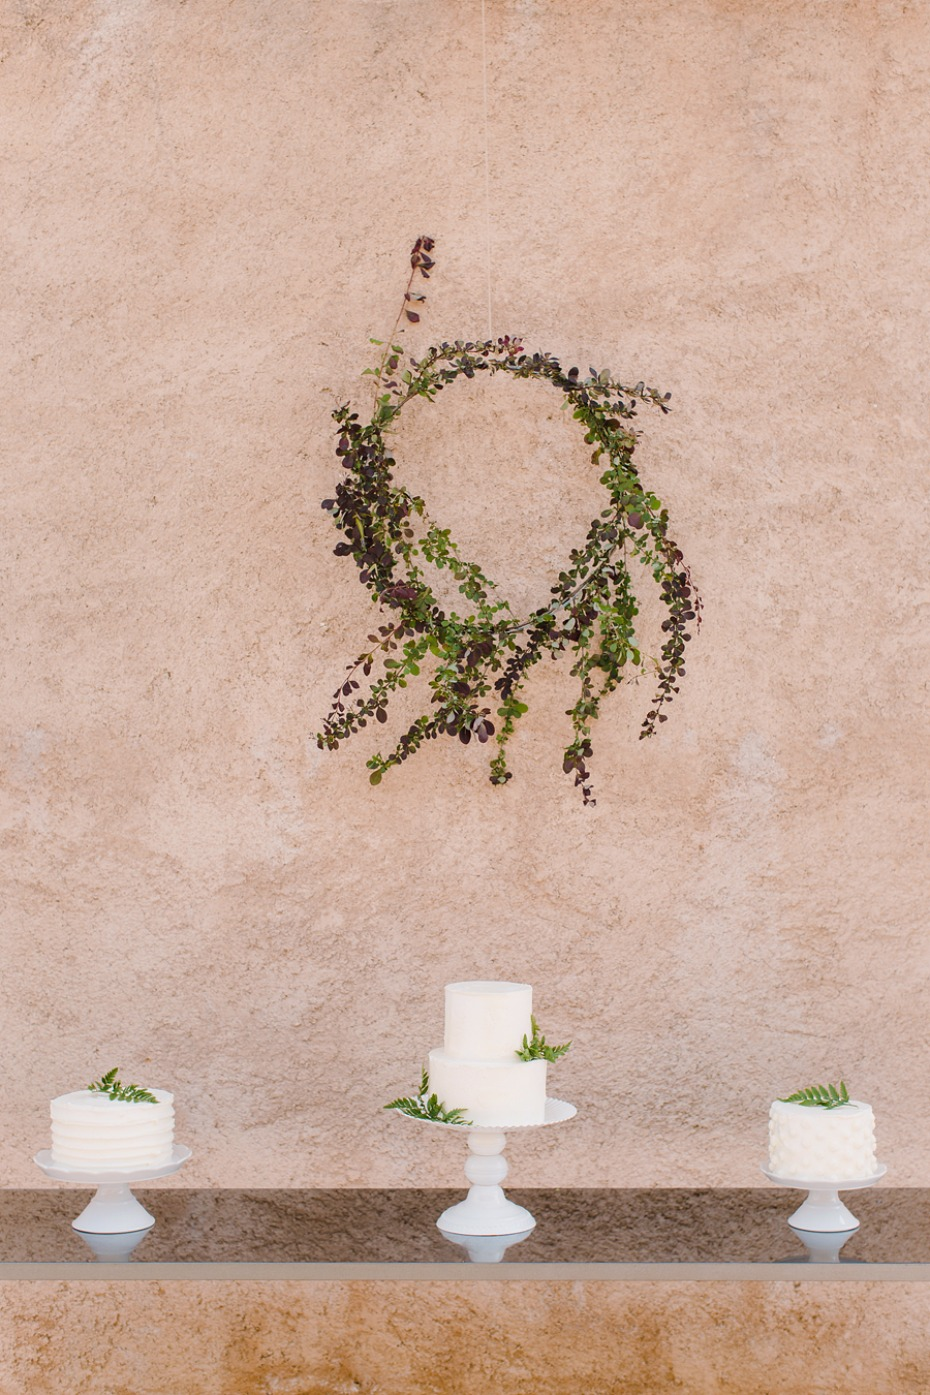 Minimalist cake table with white cakes and greenery